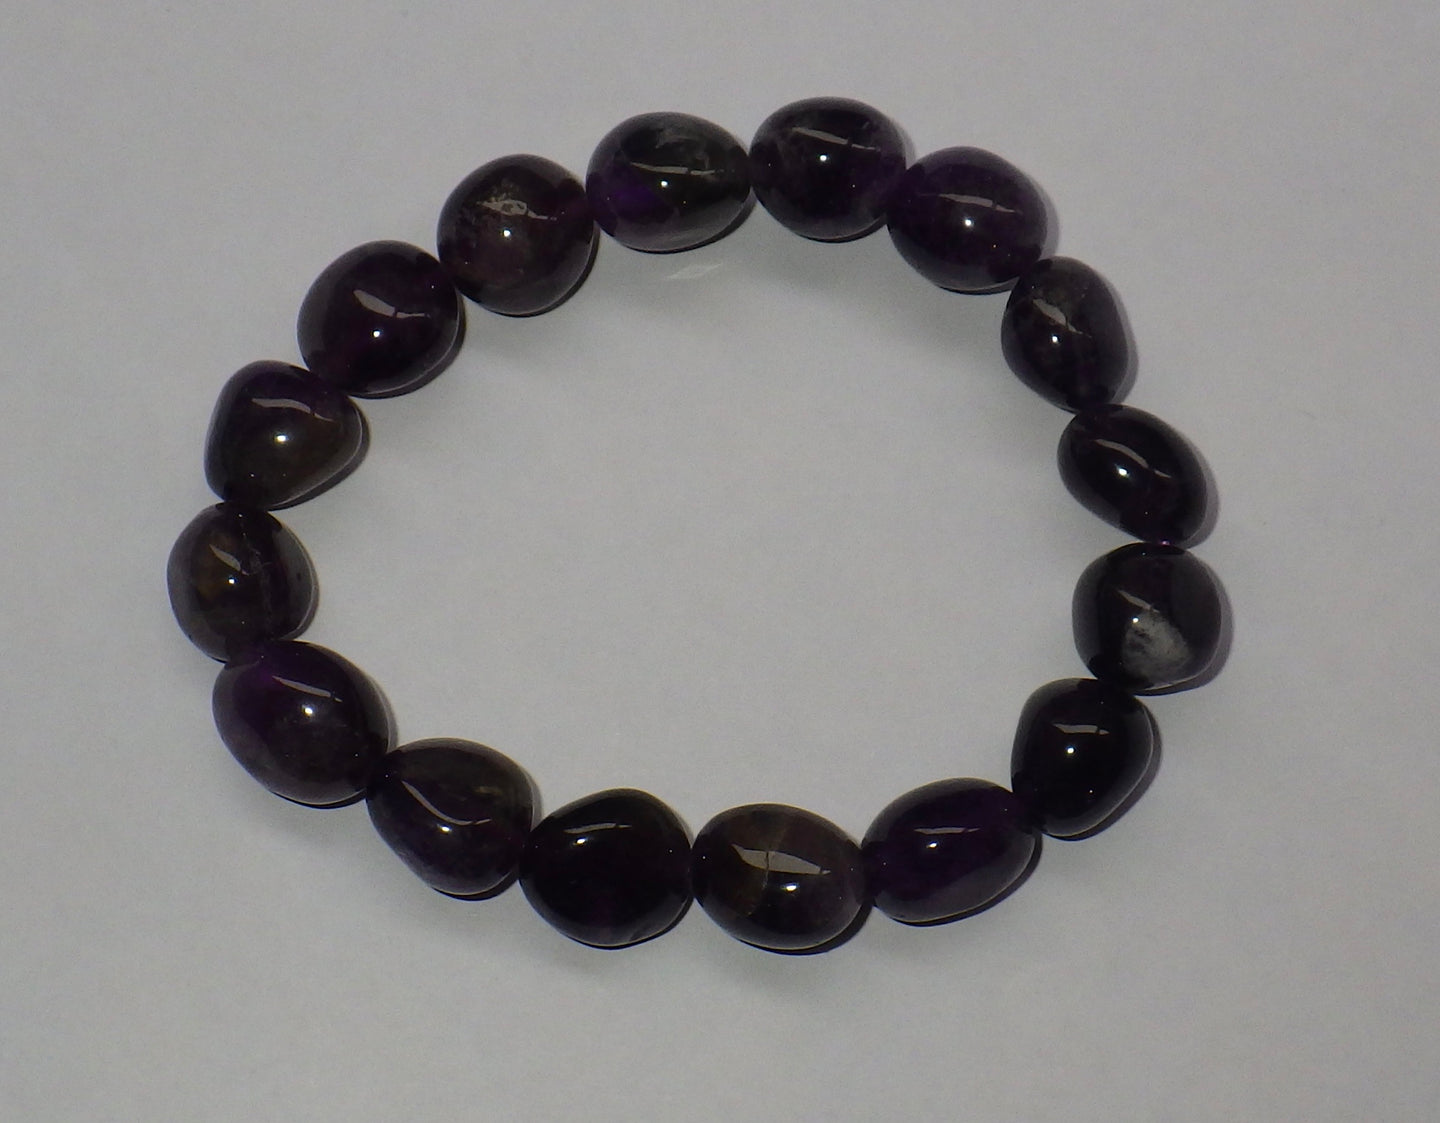 Amethyst Gemstone Bracelet | Earthfound.co.uk